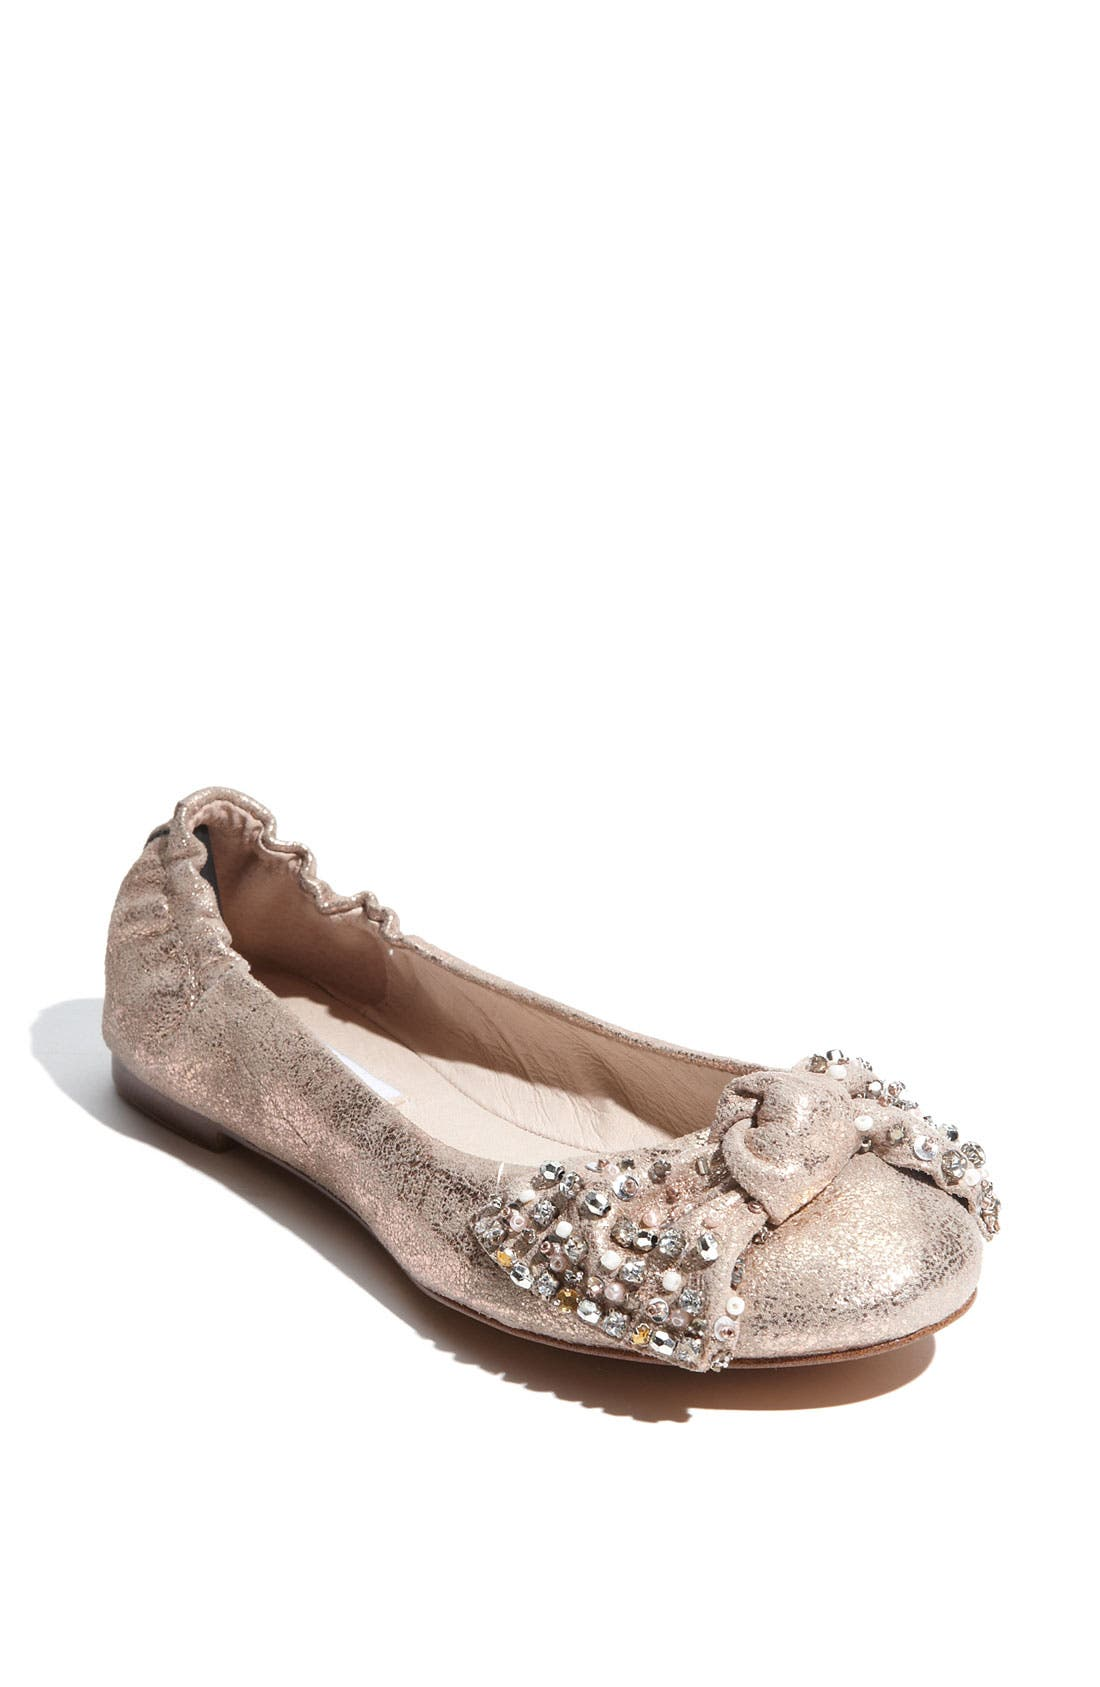 Alternate Image 1 Selected - Steve Madden 'Kortship' Flat